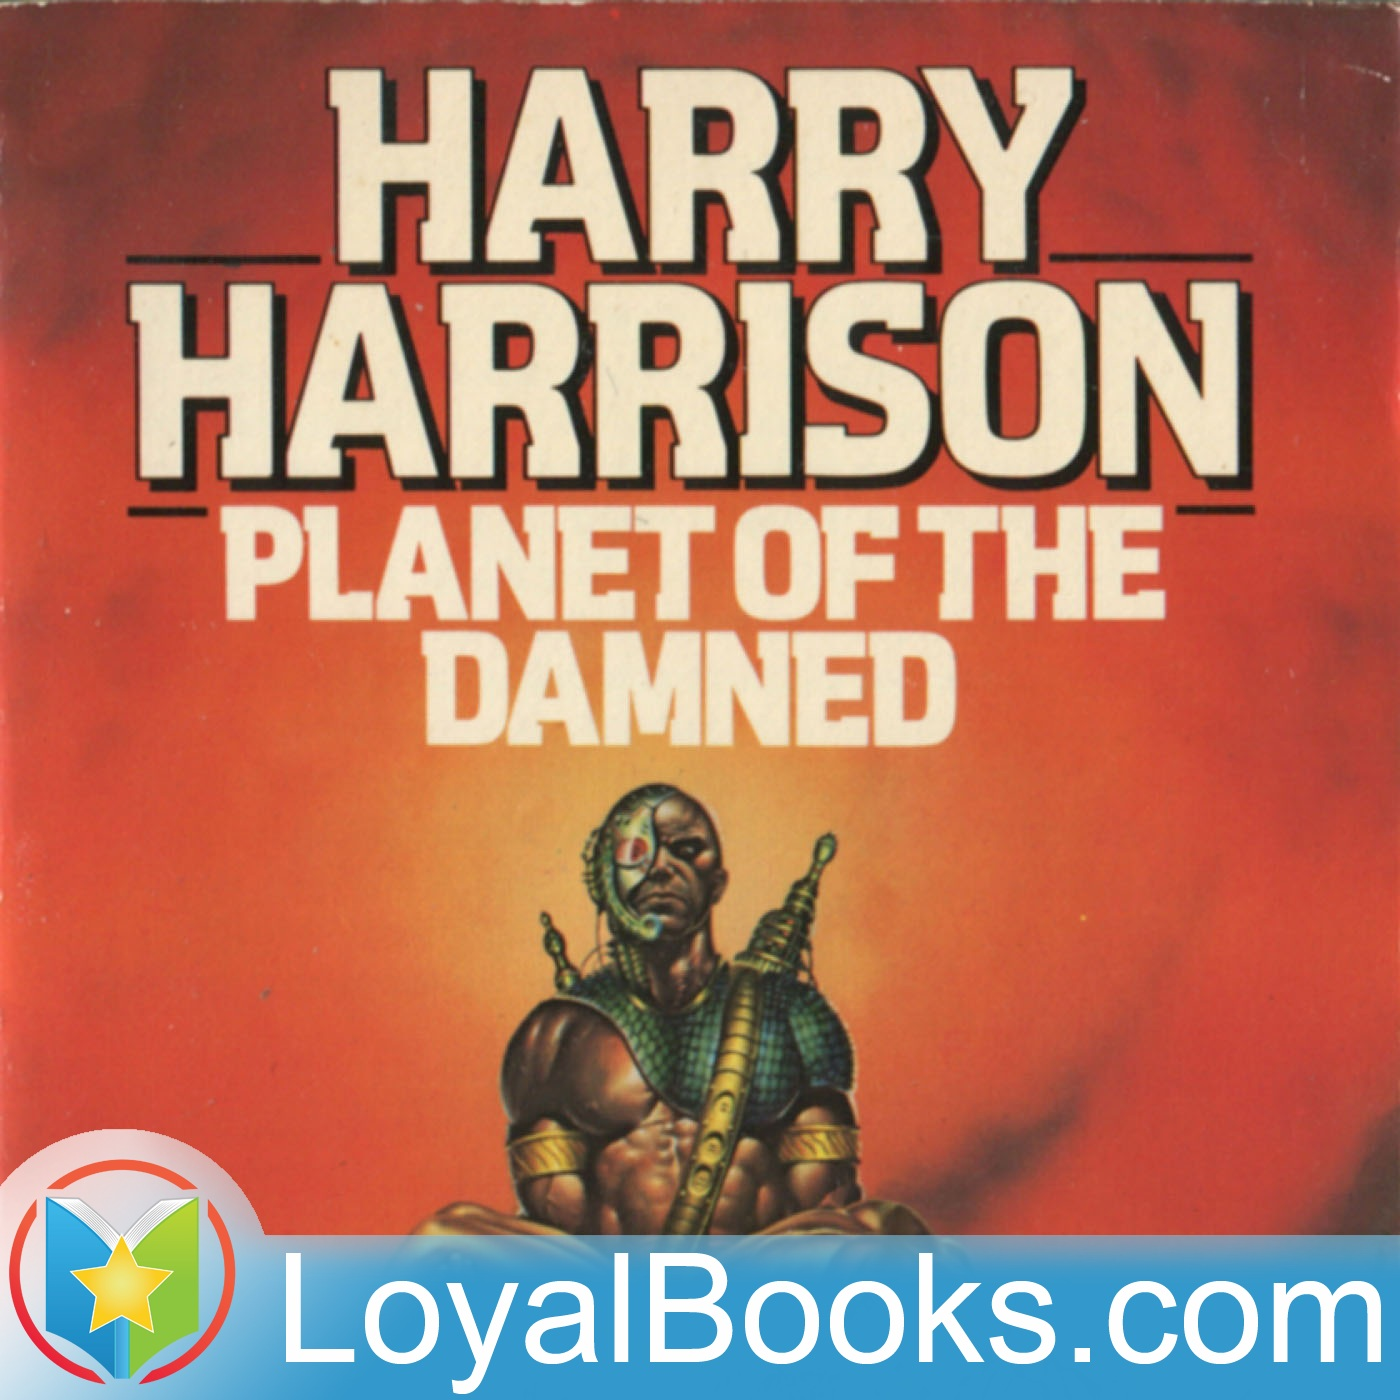 <![CDATA[Planet of the Damned by Harry Harrison]]>